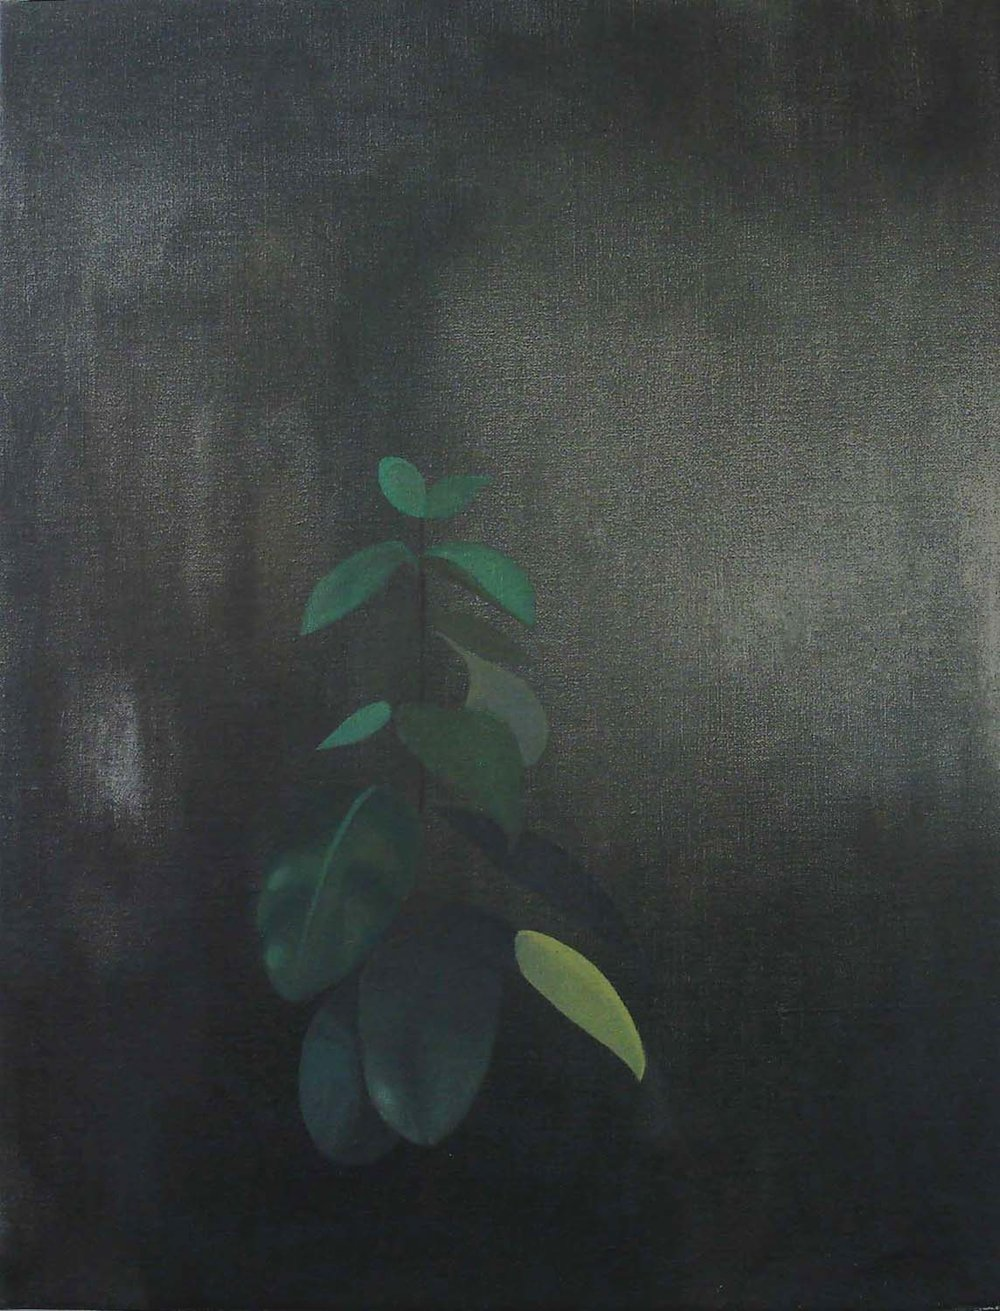 Dark Plant    2005, oil on canvas, 66 x 51cm